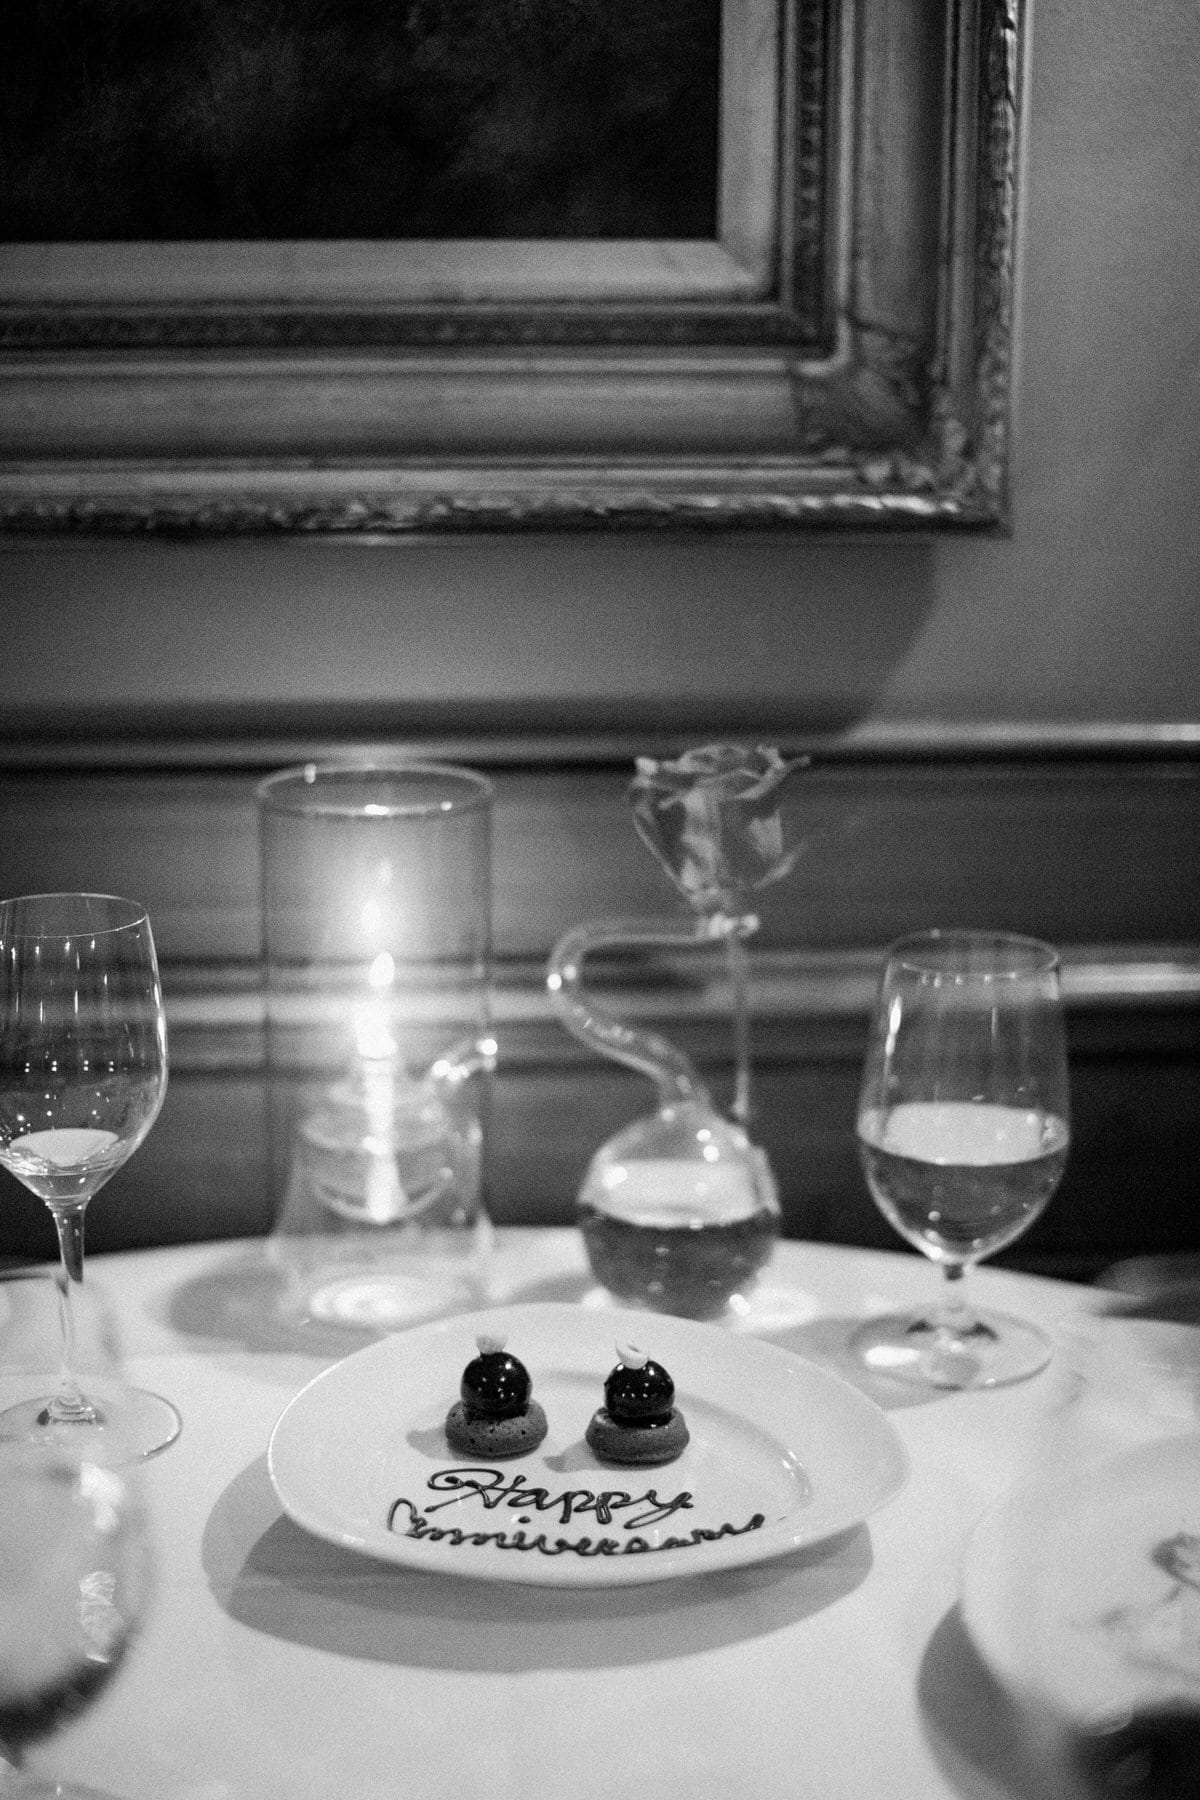 Immigrant-Room-Restaurant-American-Club-Kohler-Wisconsin-black-and-white-fine-art-photography-by-Studio-L-photographer-Laura-Schneider-_6414